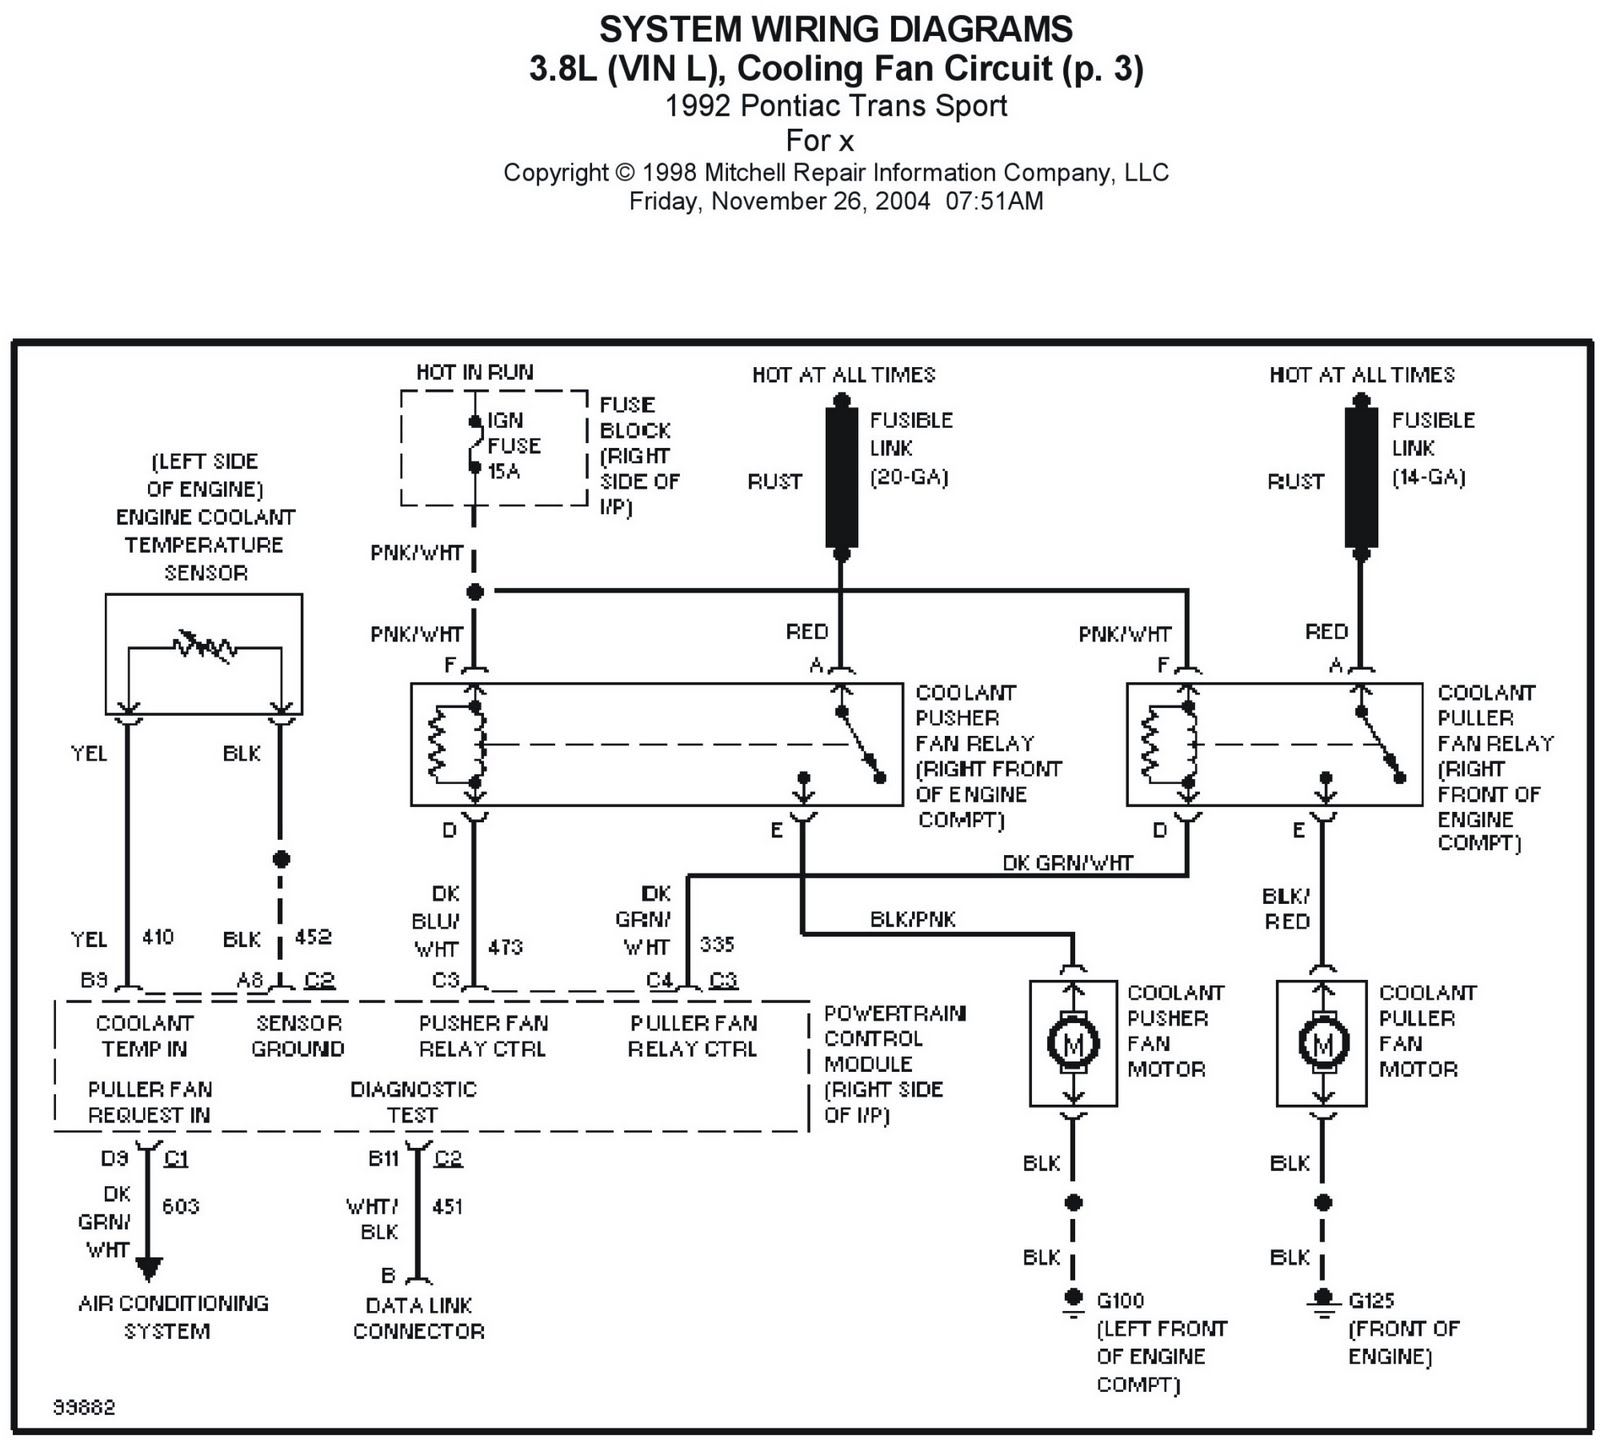 1979 Trans Am Dash Wiring Diagram Orbit Fan Switch 98 Free Engine Image For User